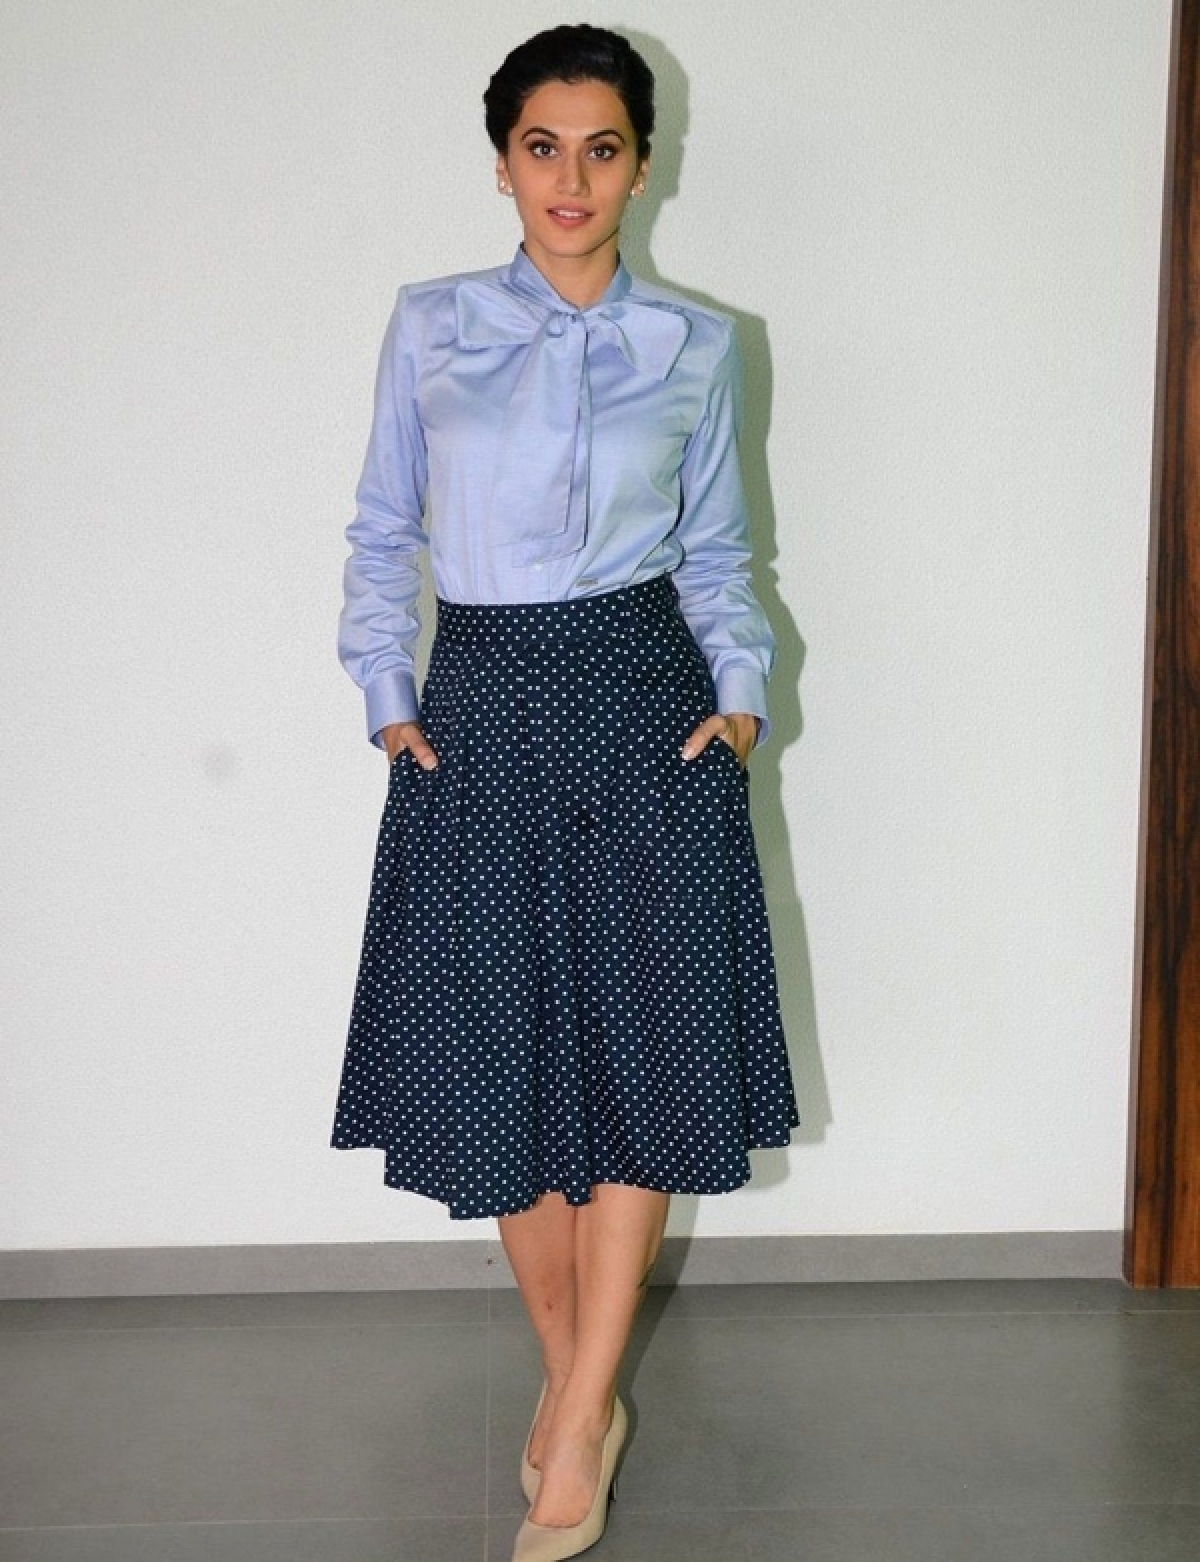 No skirting the matter: How to rock the season's light-n-easy trend